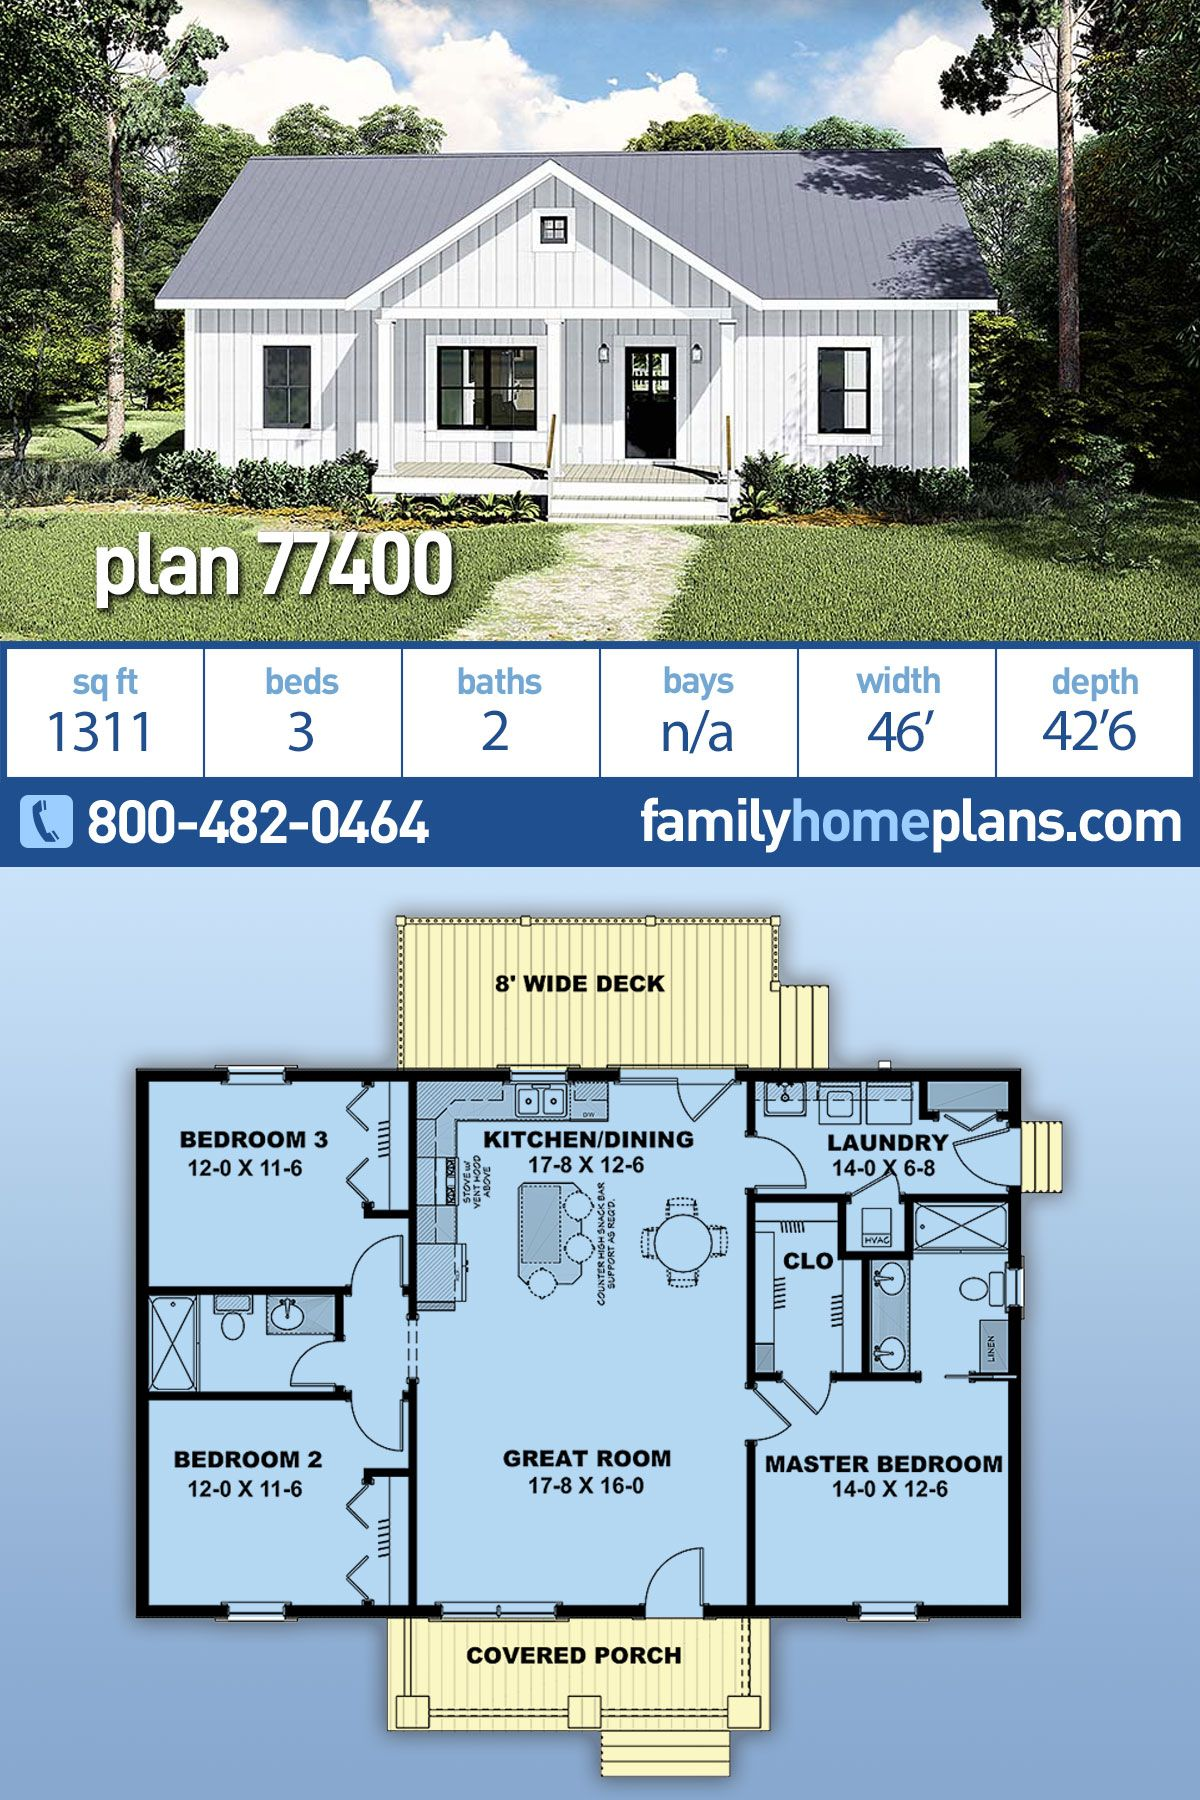 Country Ranch Home Plan 77400 Is 1311 Sq Ft 3 Bedrooms 2 Bathrooms Offers Affordable Constru Country Style House Plans Ranch House Plans Country House Plans